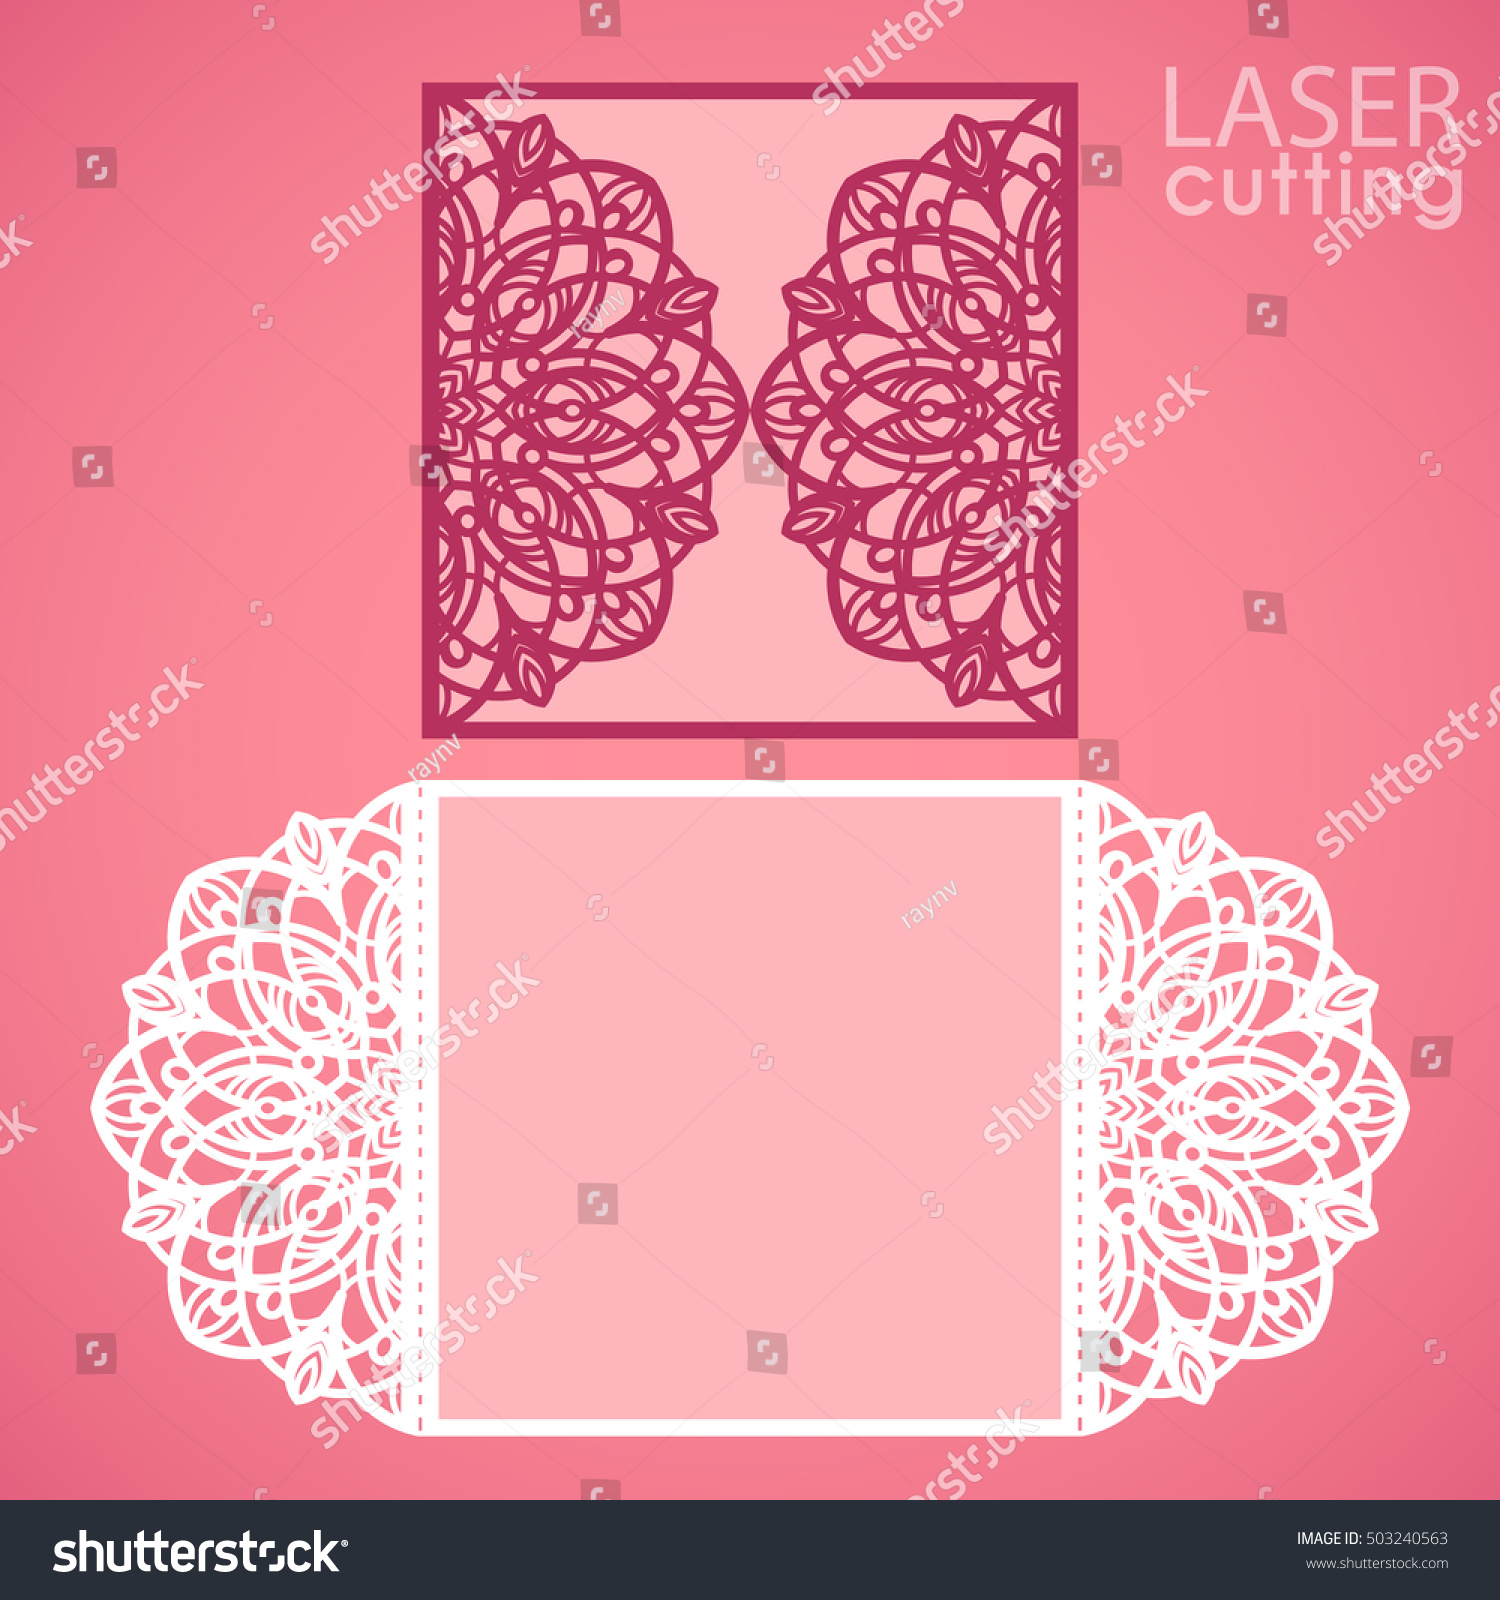 Laser cut wedding invitation card template em vetor stock 503240563 laser cut wedding invitation card template em vetor stock 503240563 shutterstock stopboris Image collections